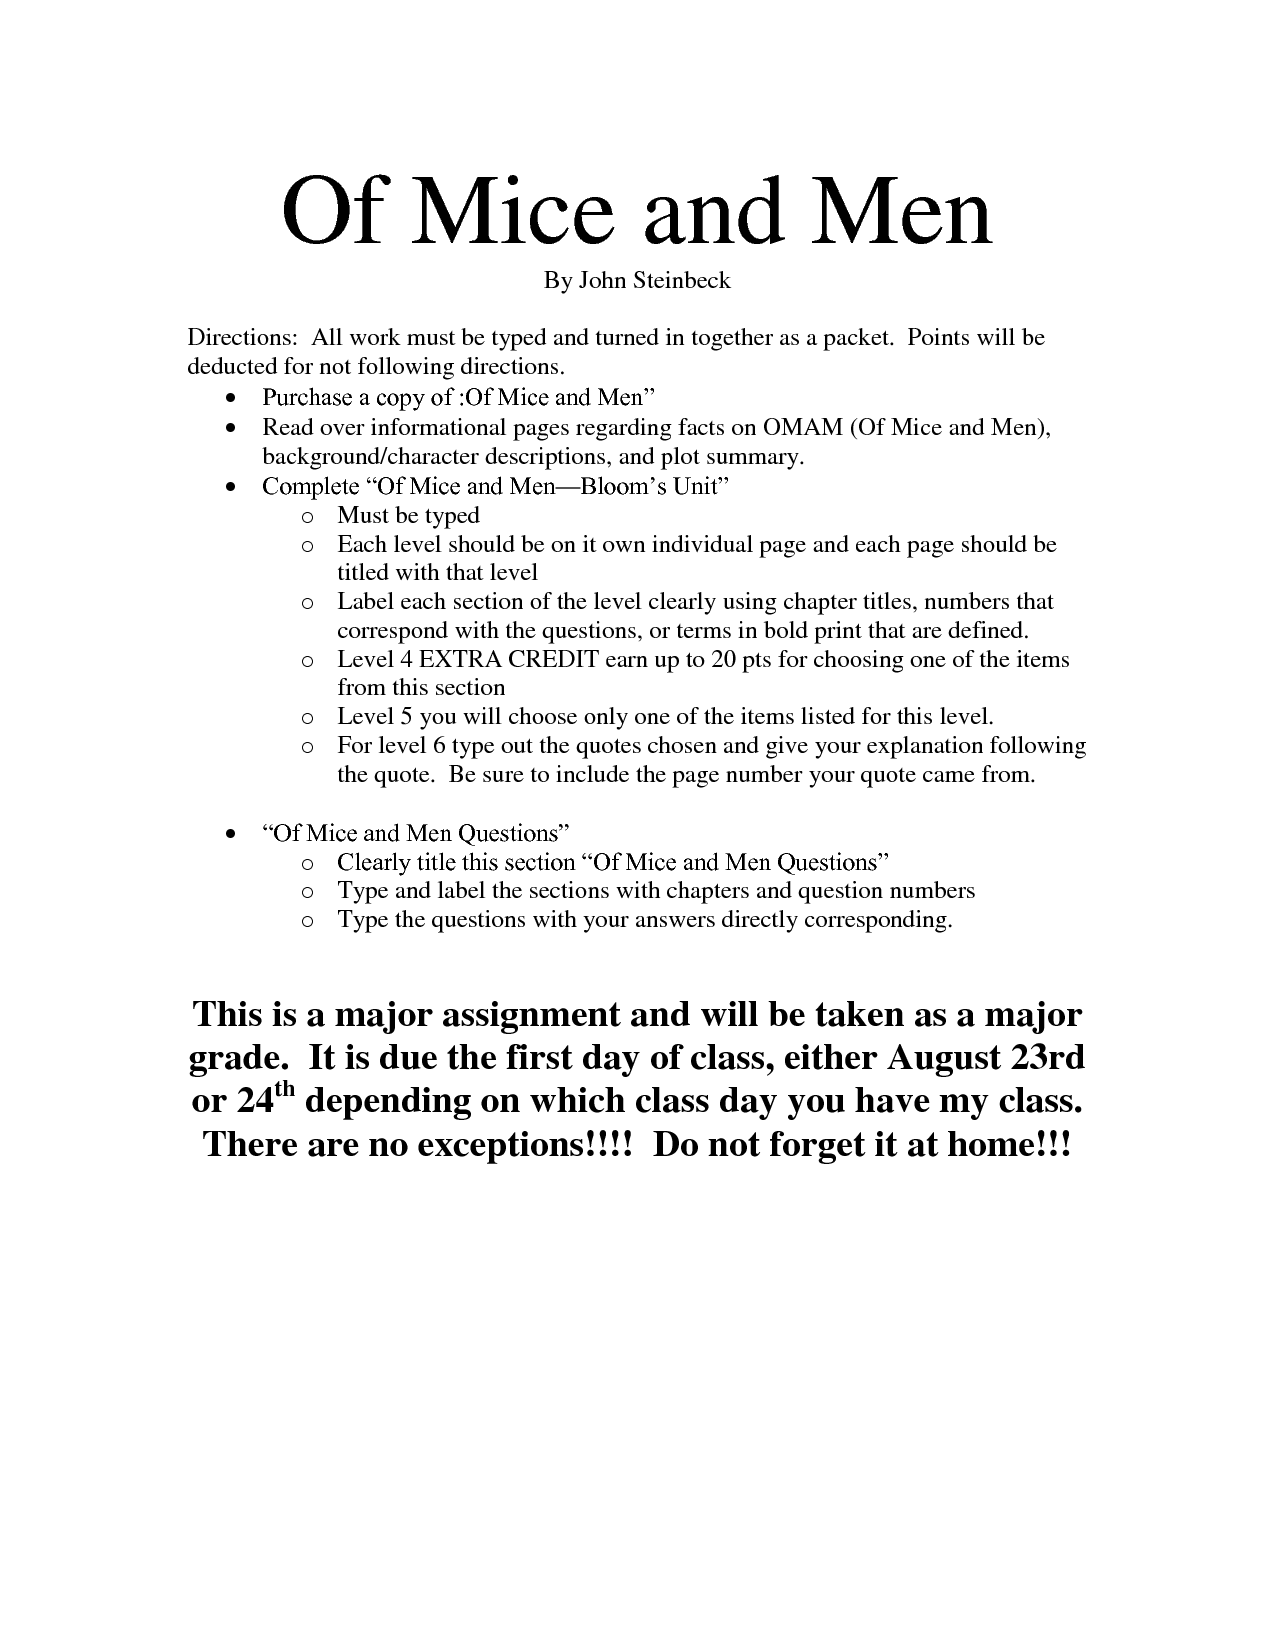 Of mice and men turning point